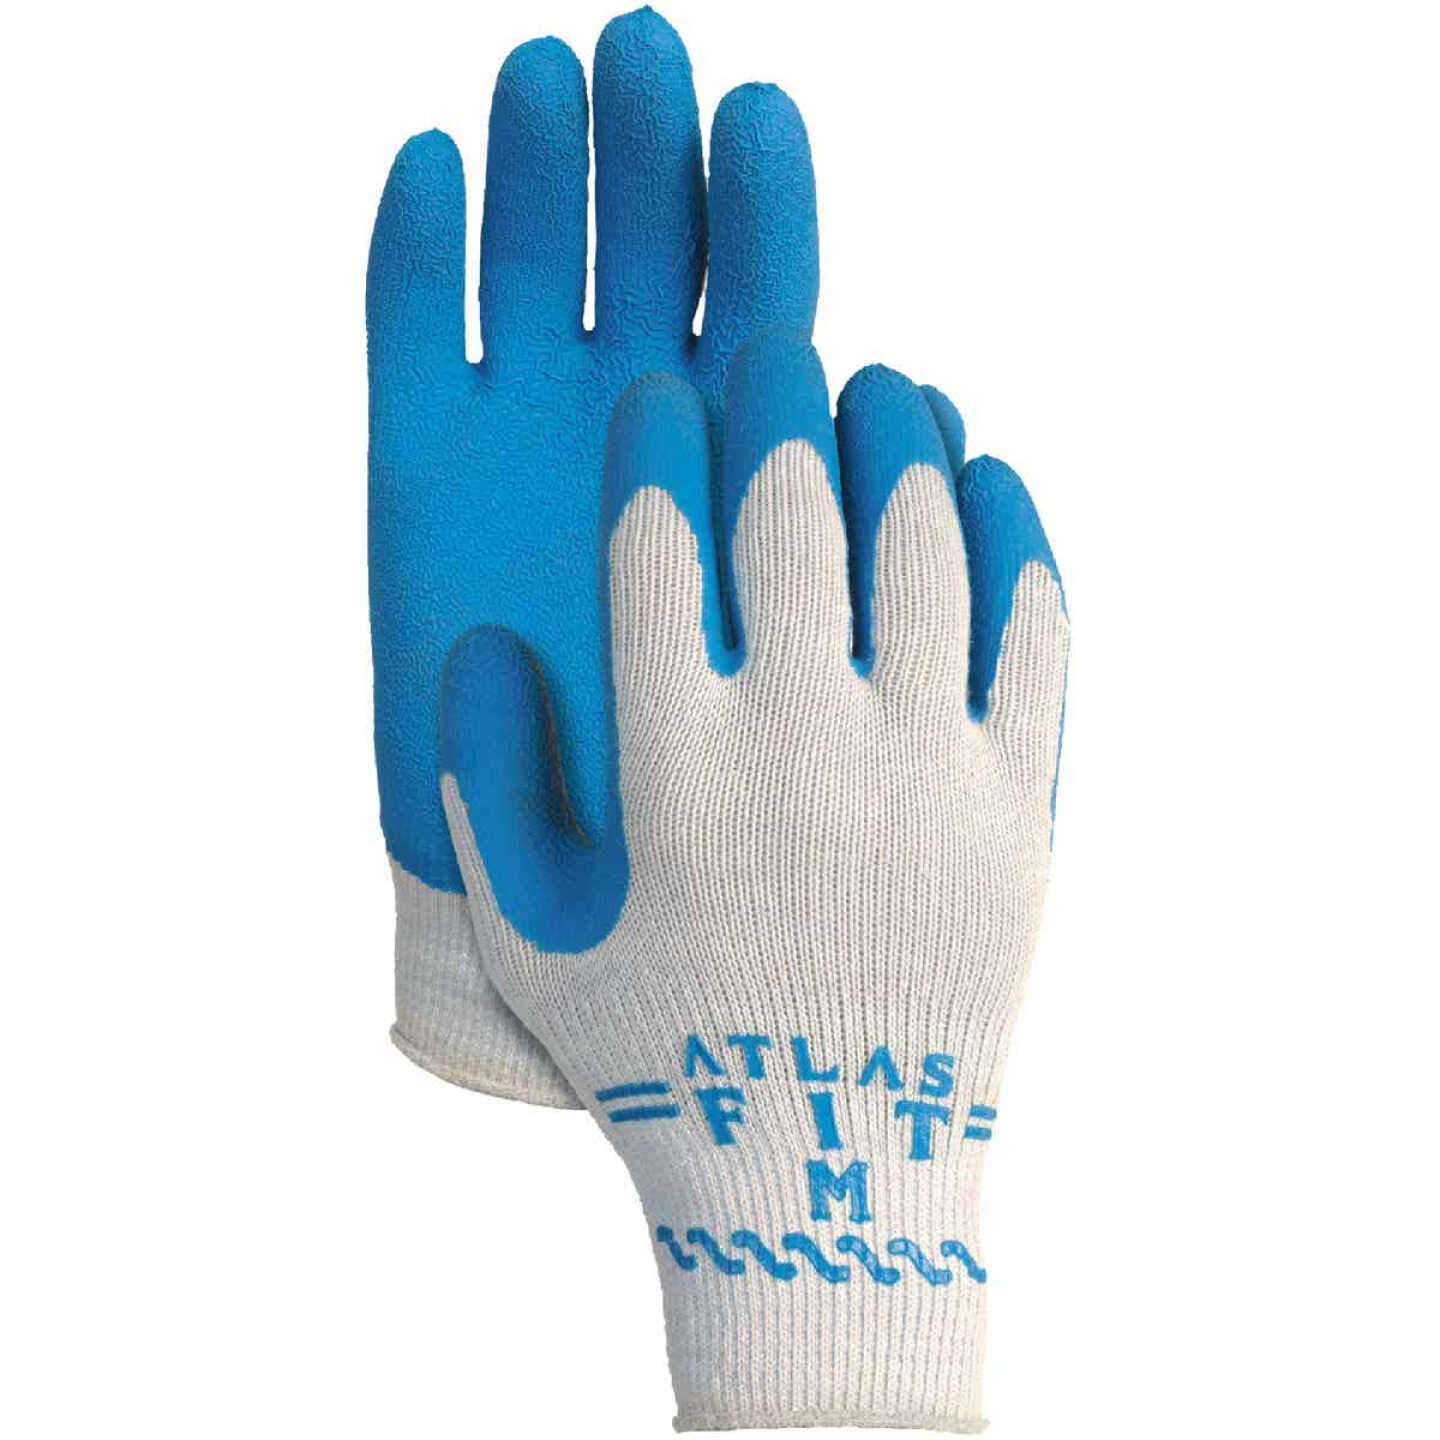 Showa Atlas Men's Small Rubber Coated Glove Image 1